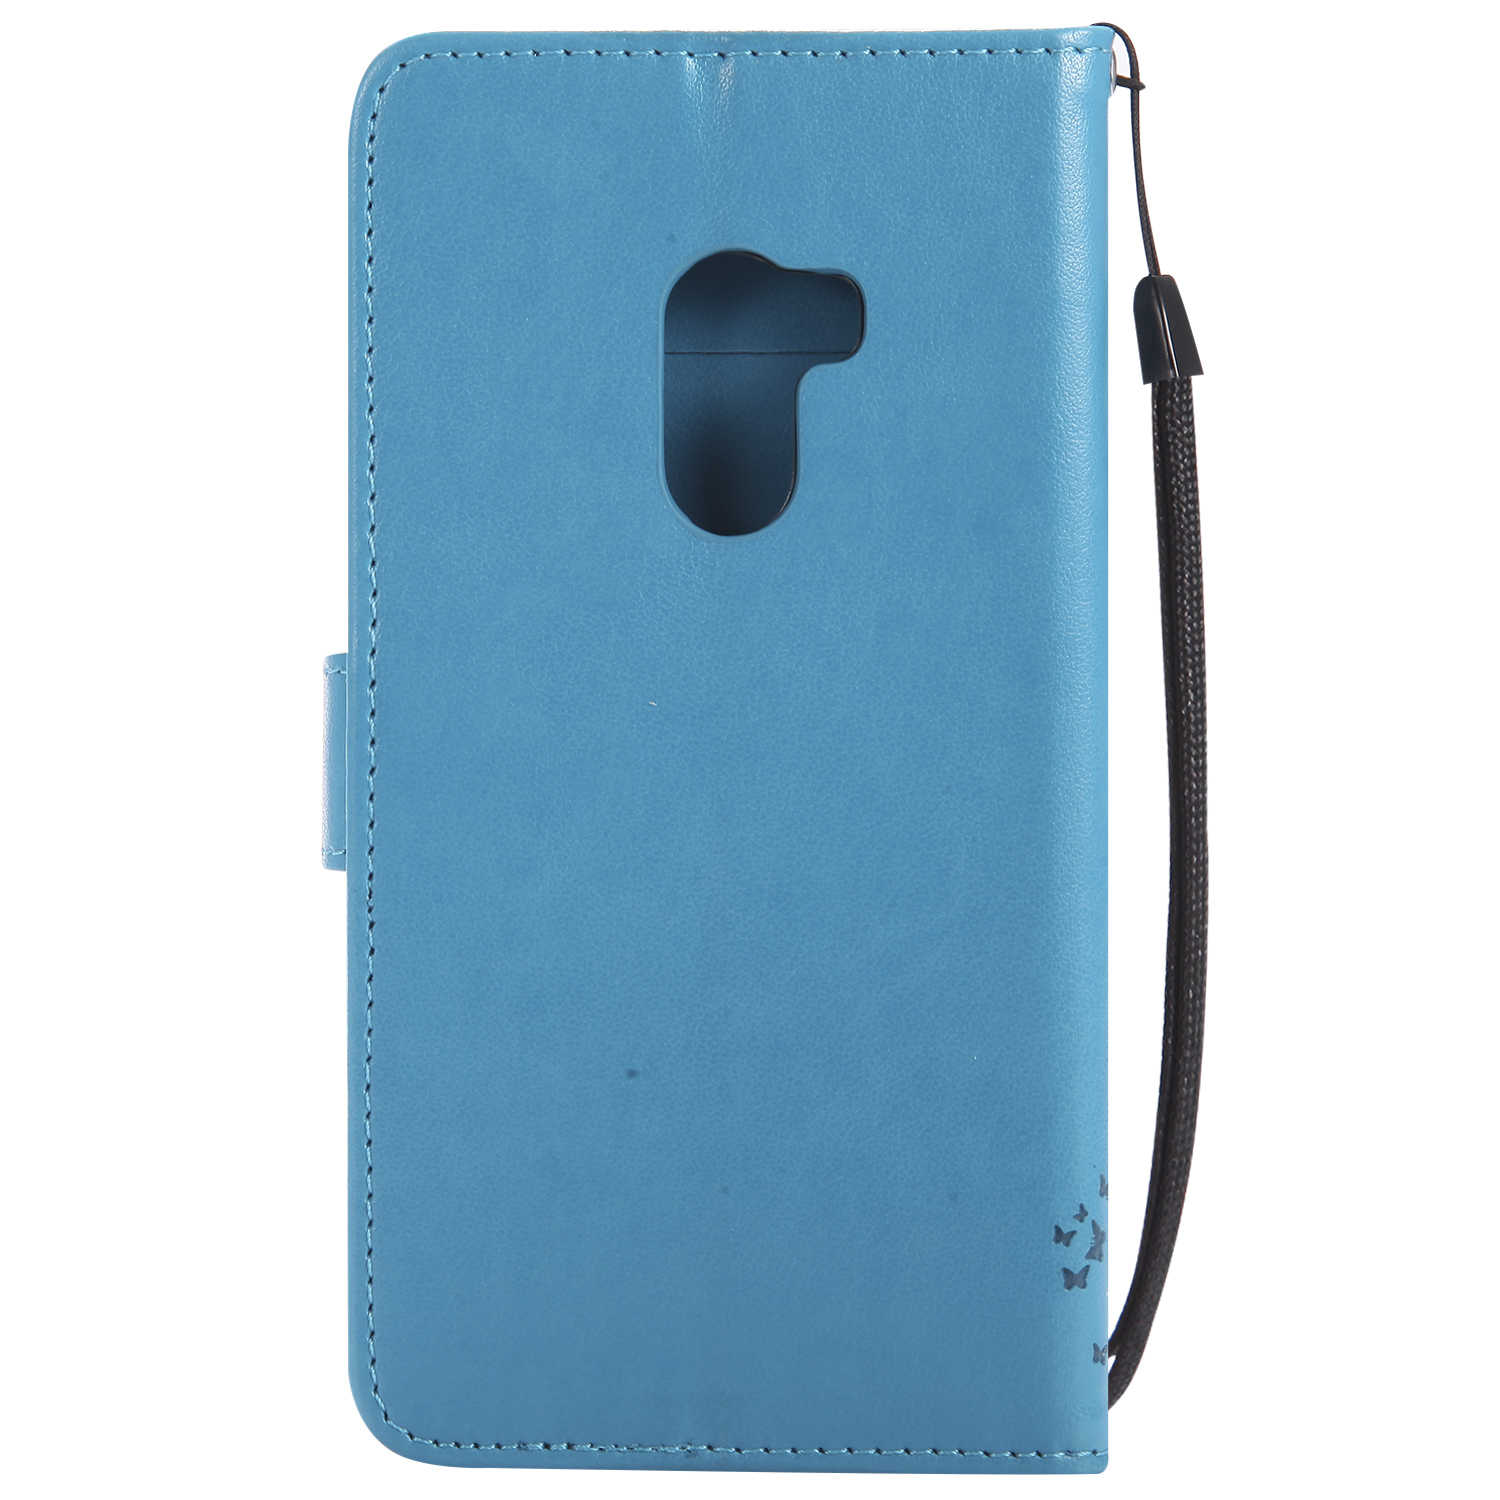 360 Magnetic For Xiaomi Redmi Note 5 6 7 Pro k20 Pro 3D Leather Flip Case For Xiaomi mi mix 2 A2 9 8 Lite 9T Stand Wallet Cover